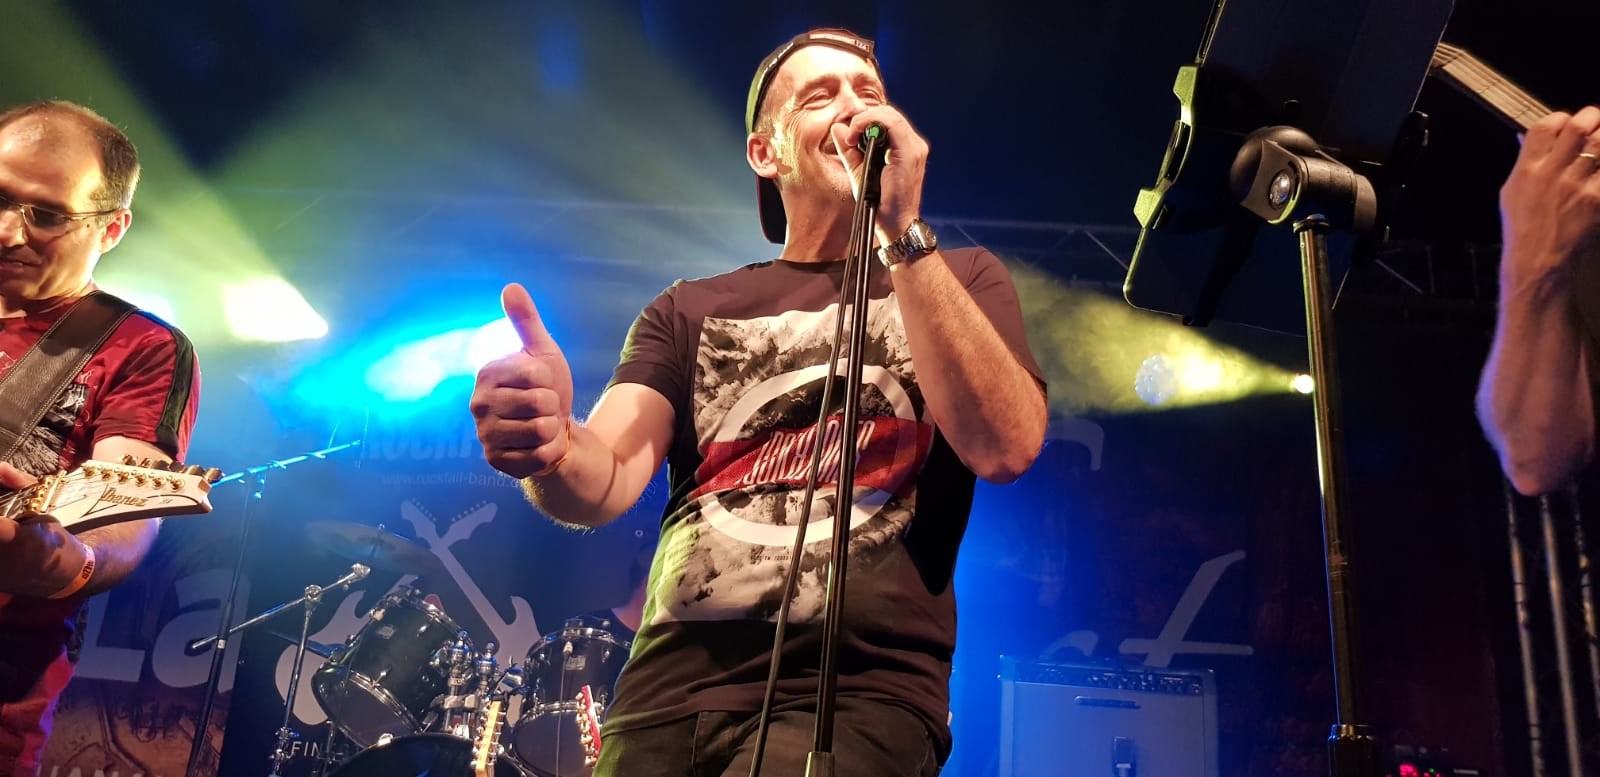 Rockfall Band Lamboyfest 2018: Thumbs up, Rudi!